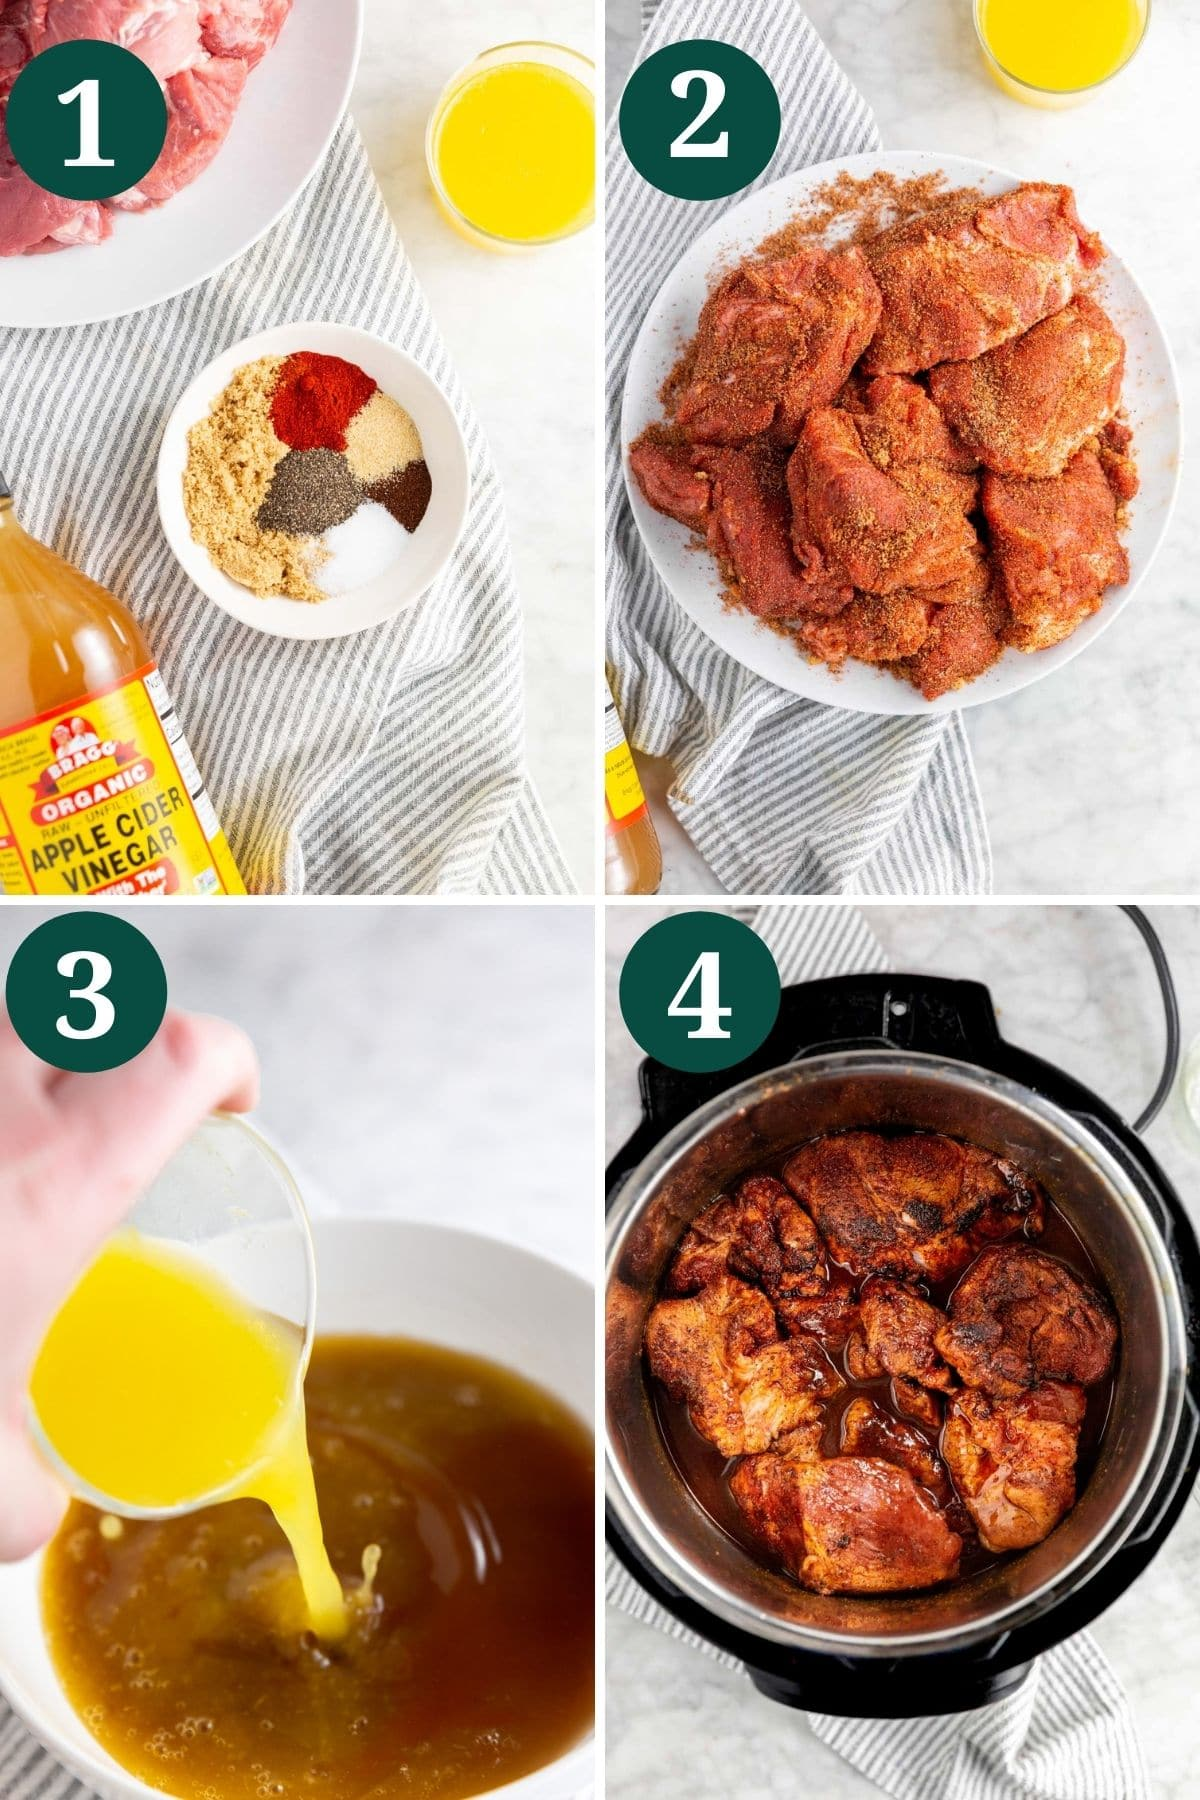 A collage showing the process of making instant pot bbq pulled pork.